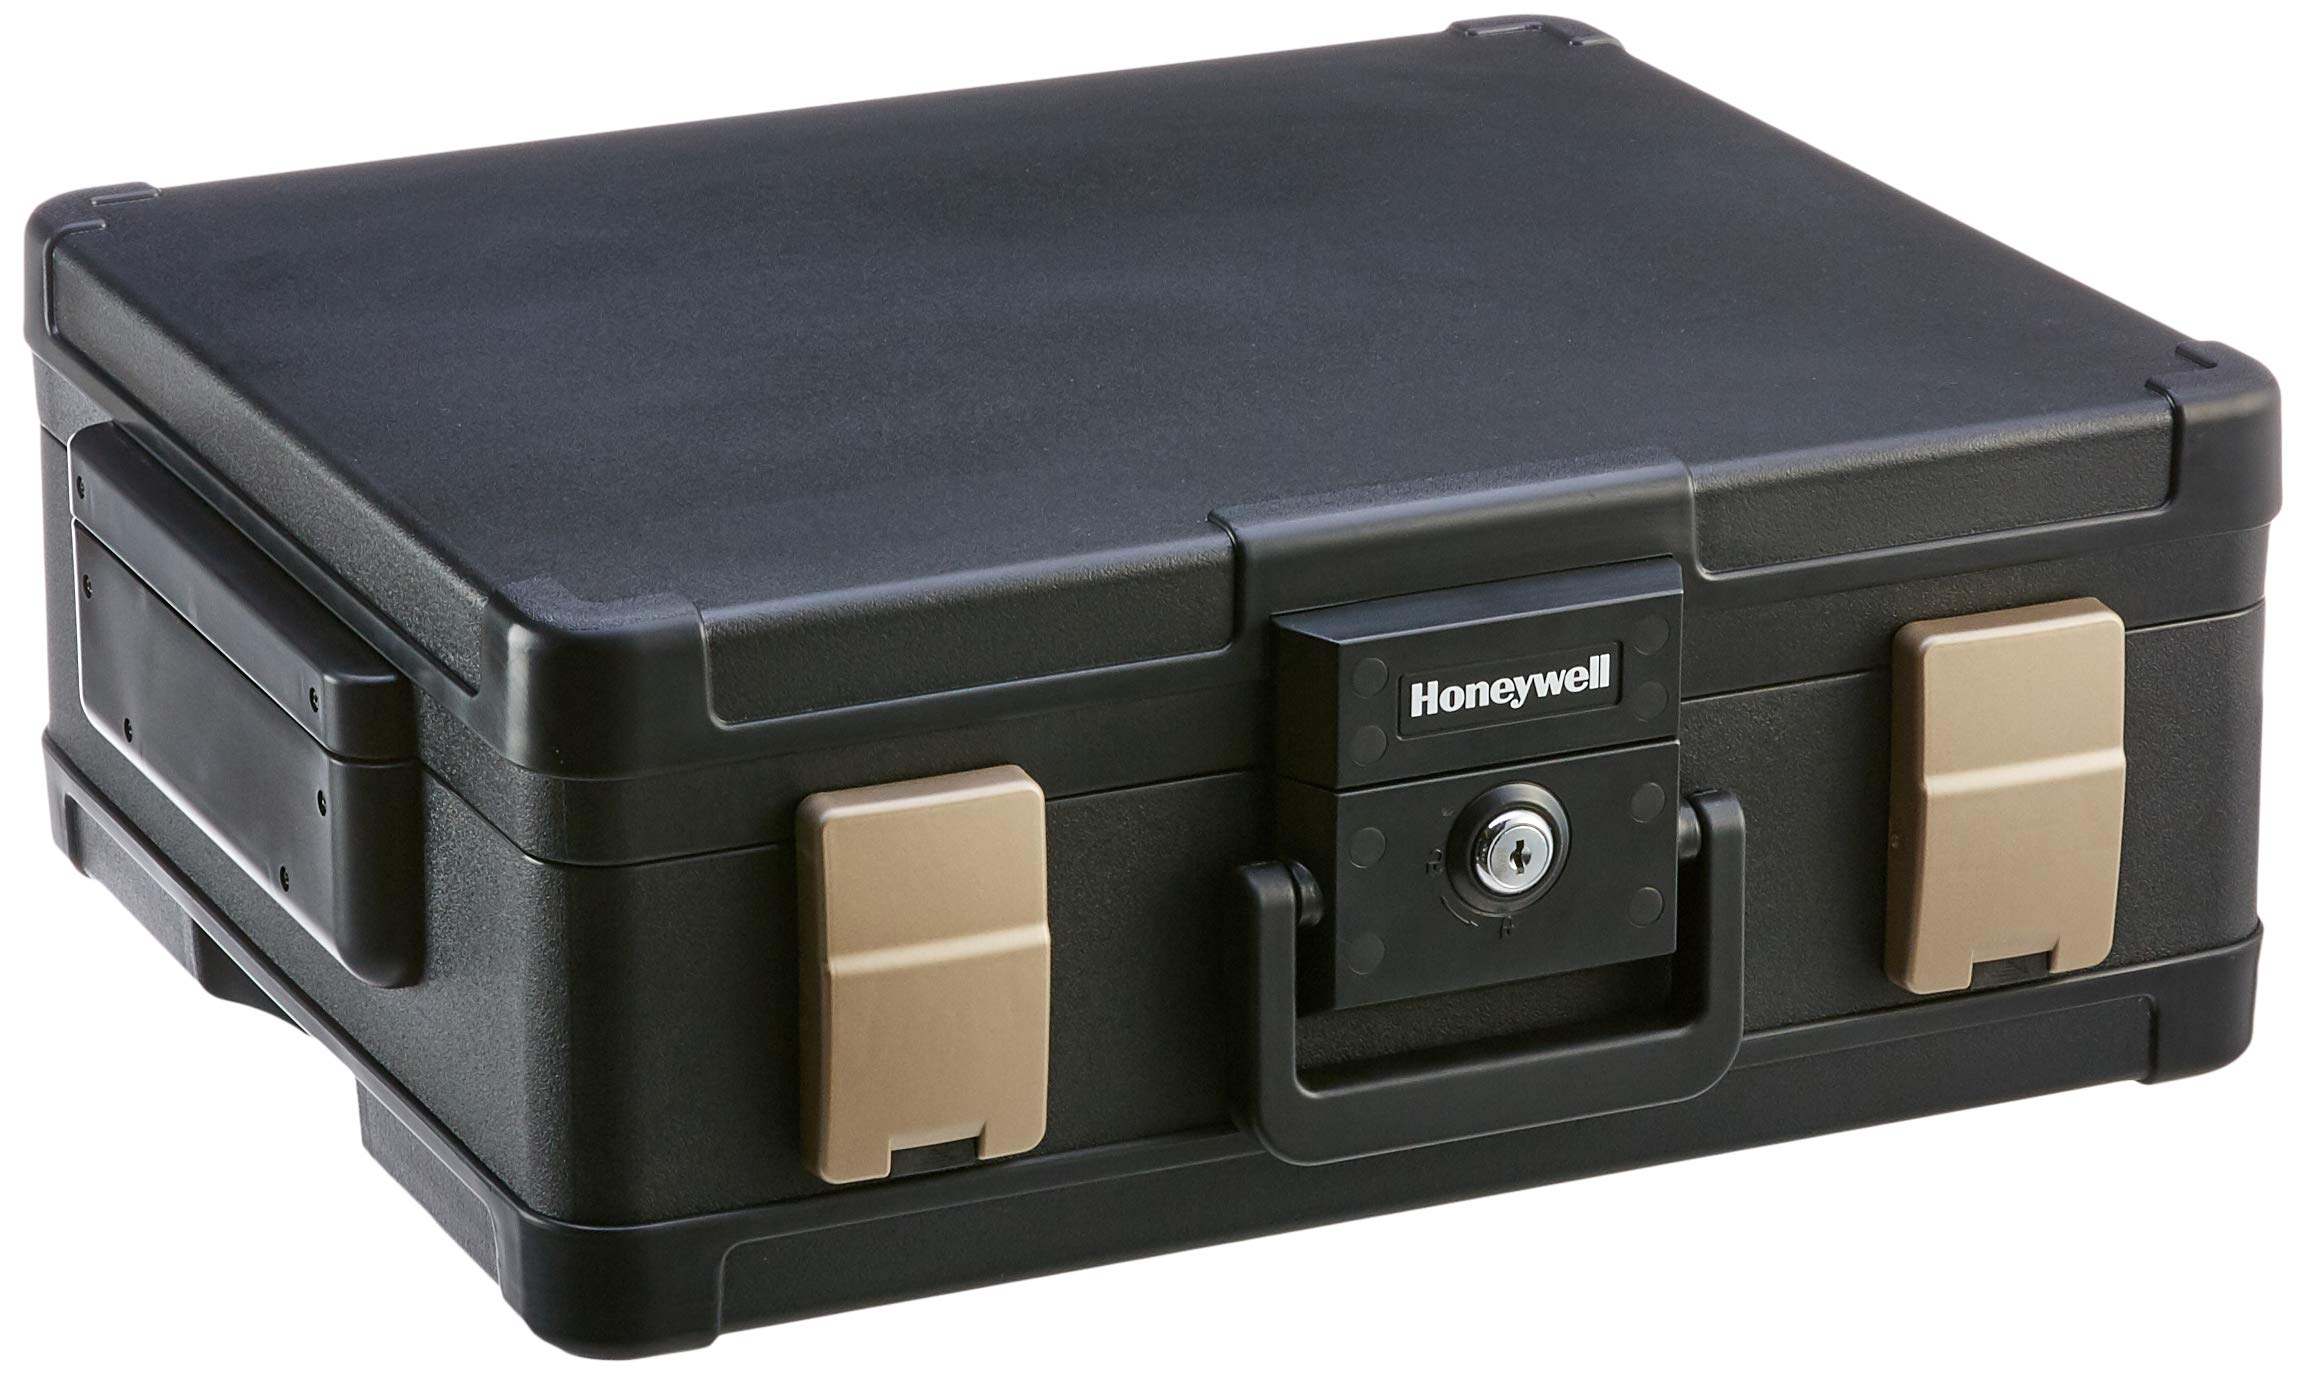 Honeywell Safes & Door Locks - 1 Hour Fire Safe Waterproof Safe Box Chest with Carry Handle, Large, 1104 by Peirui